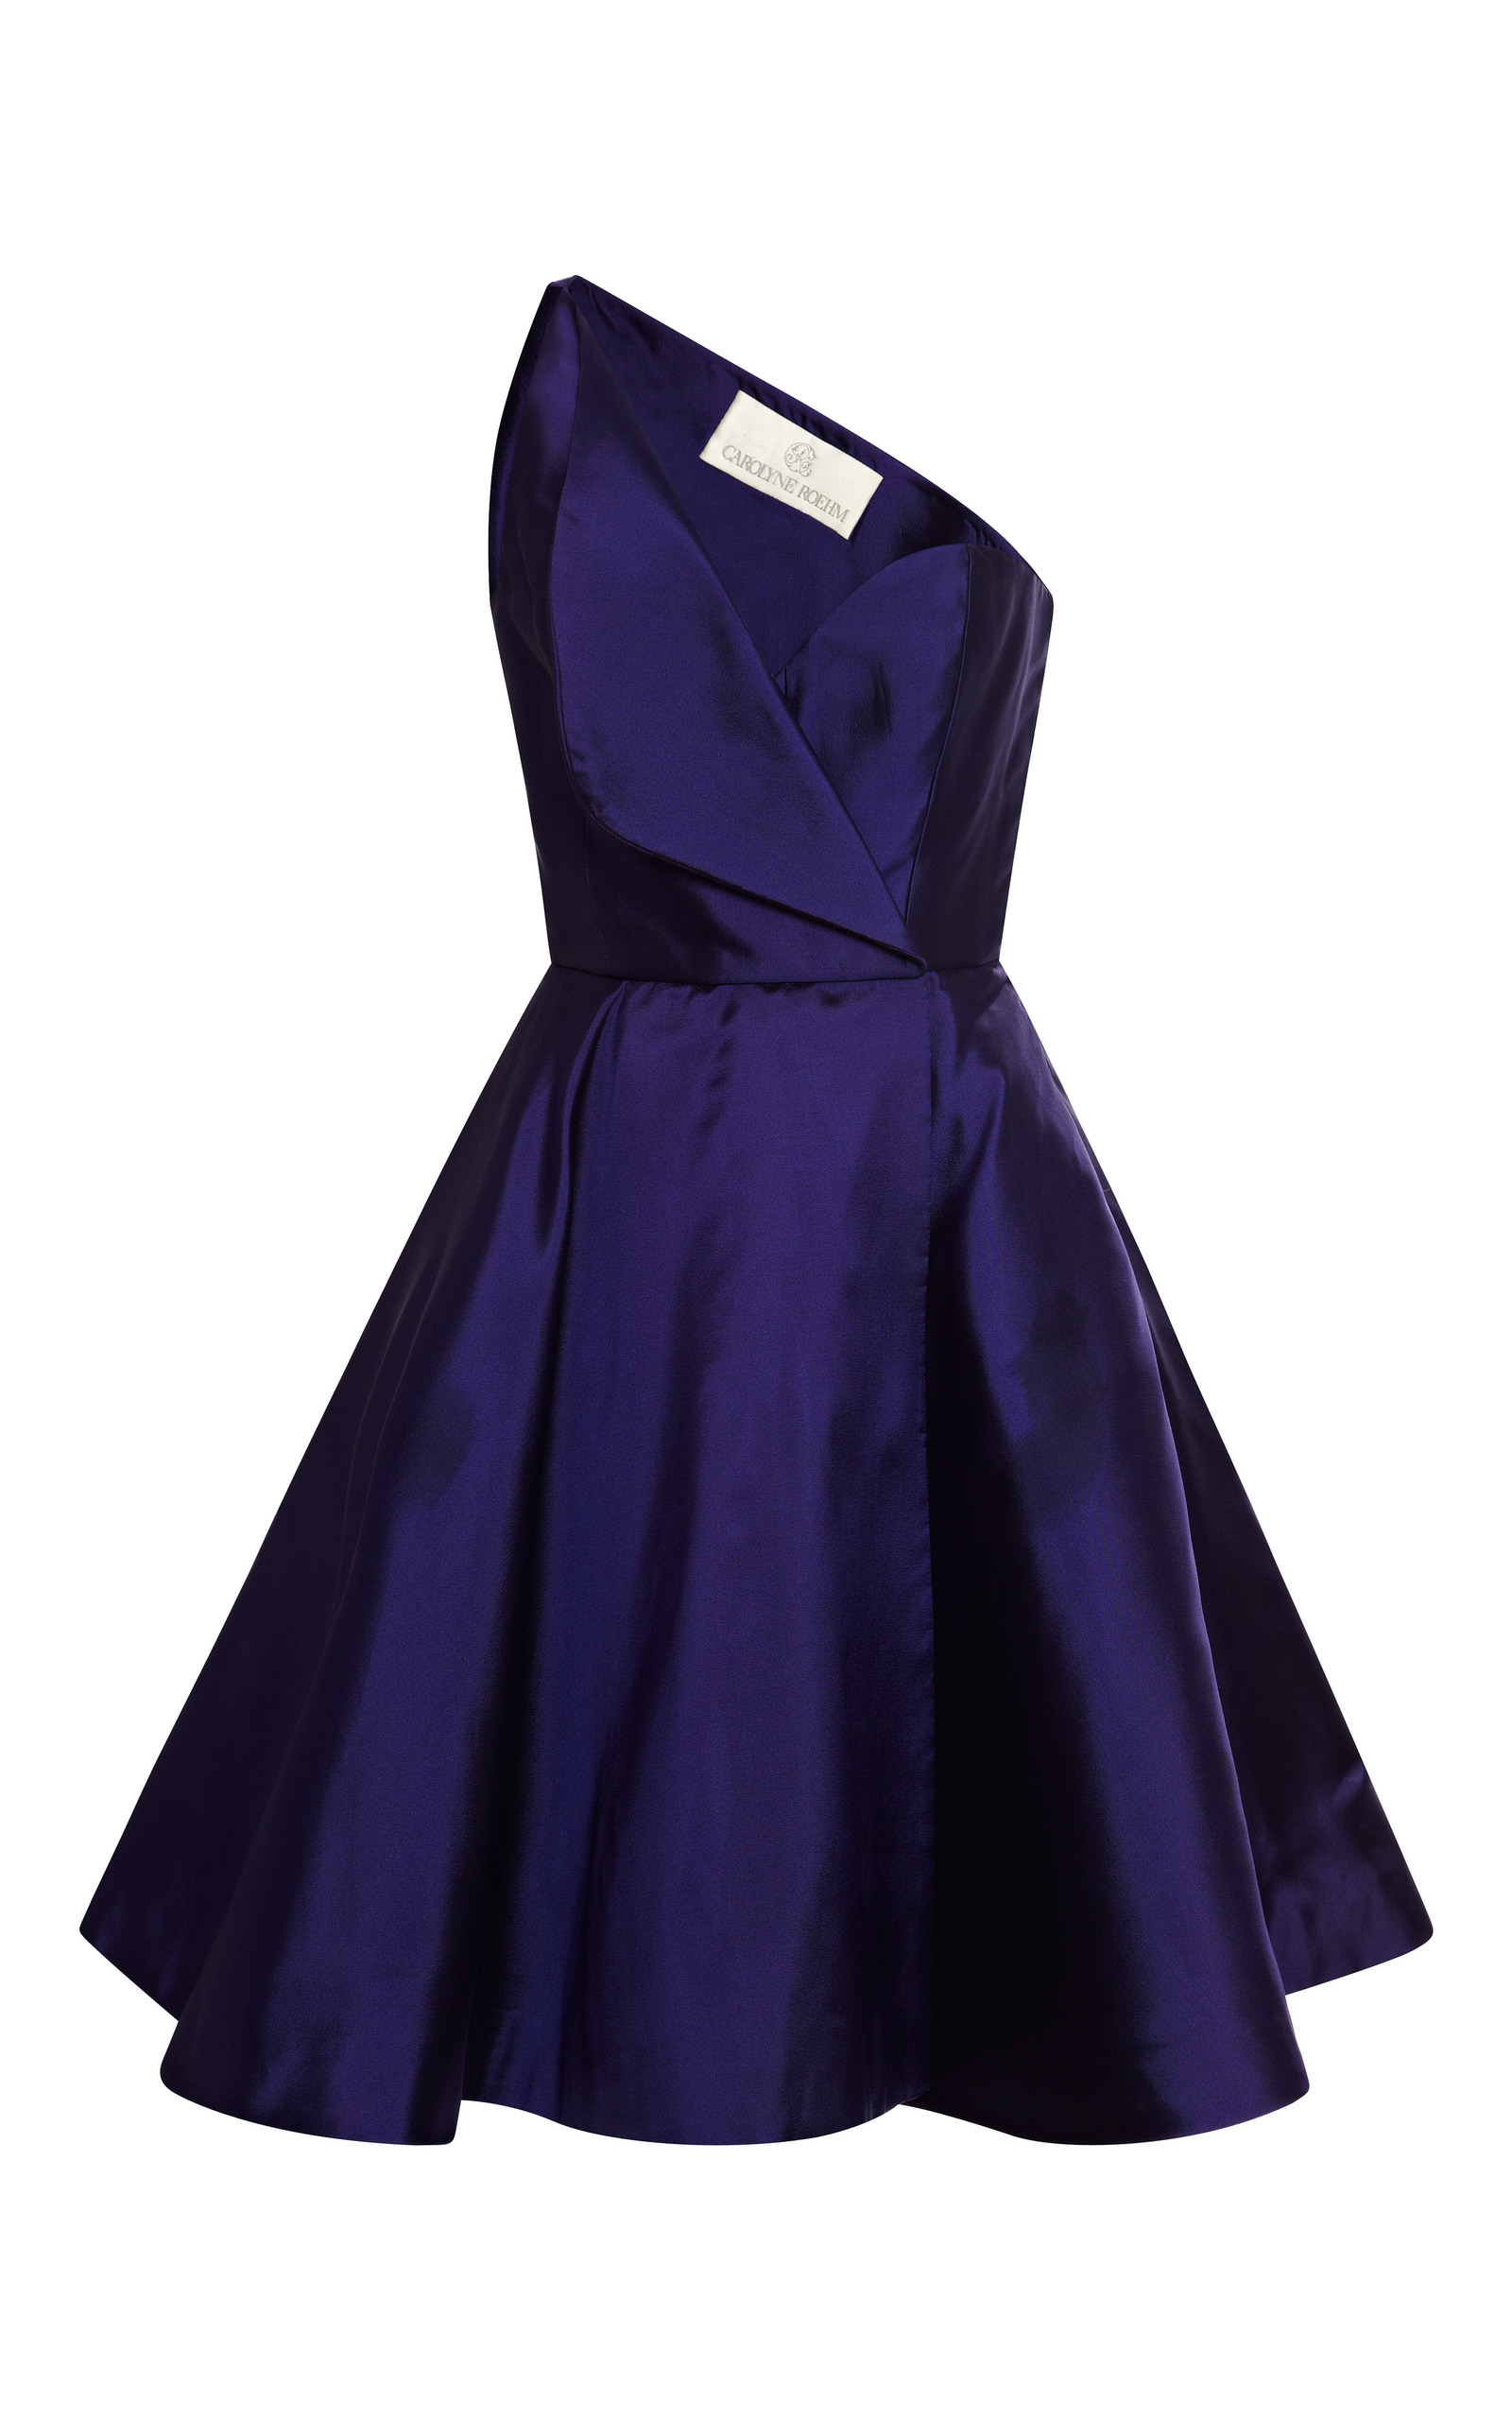 Impressive Large New York Vintage Purple New York Vintage Carolyne Roehm Purple One Shoulder Cocktail Dress Vintage Cocktail Dresses Amazon Vintage Cocktail Dresses 1950 S wedding dress Vintage Cocktail Dresses